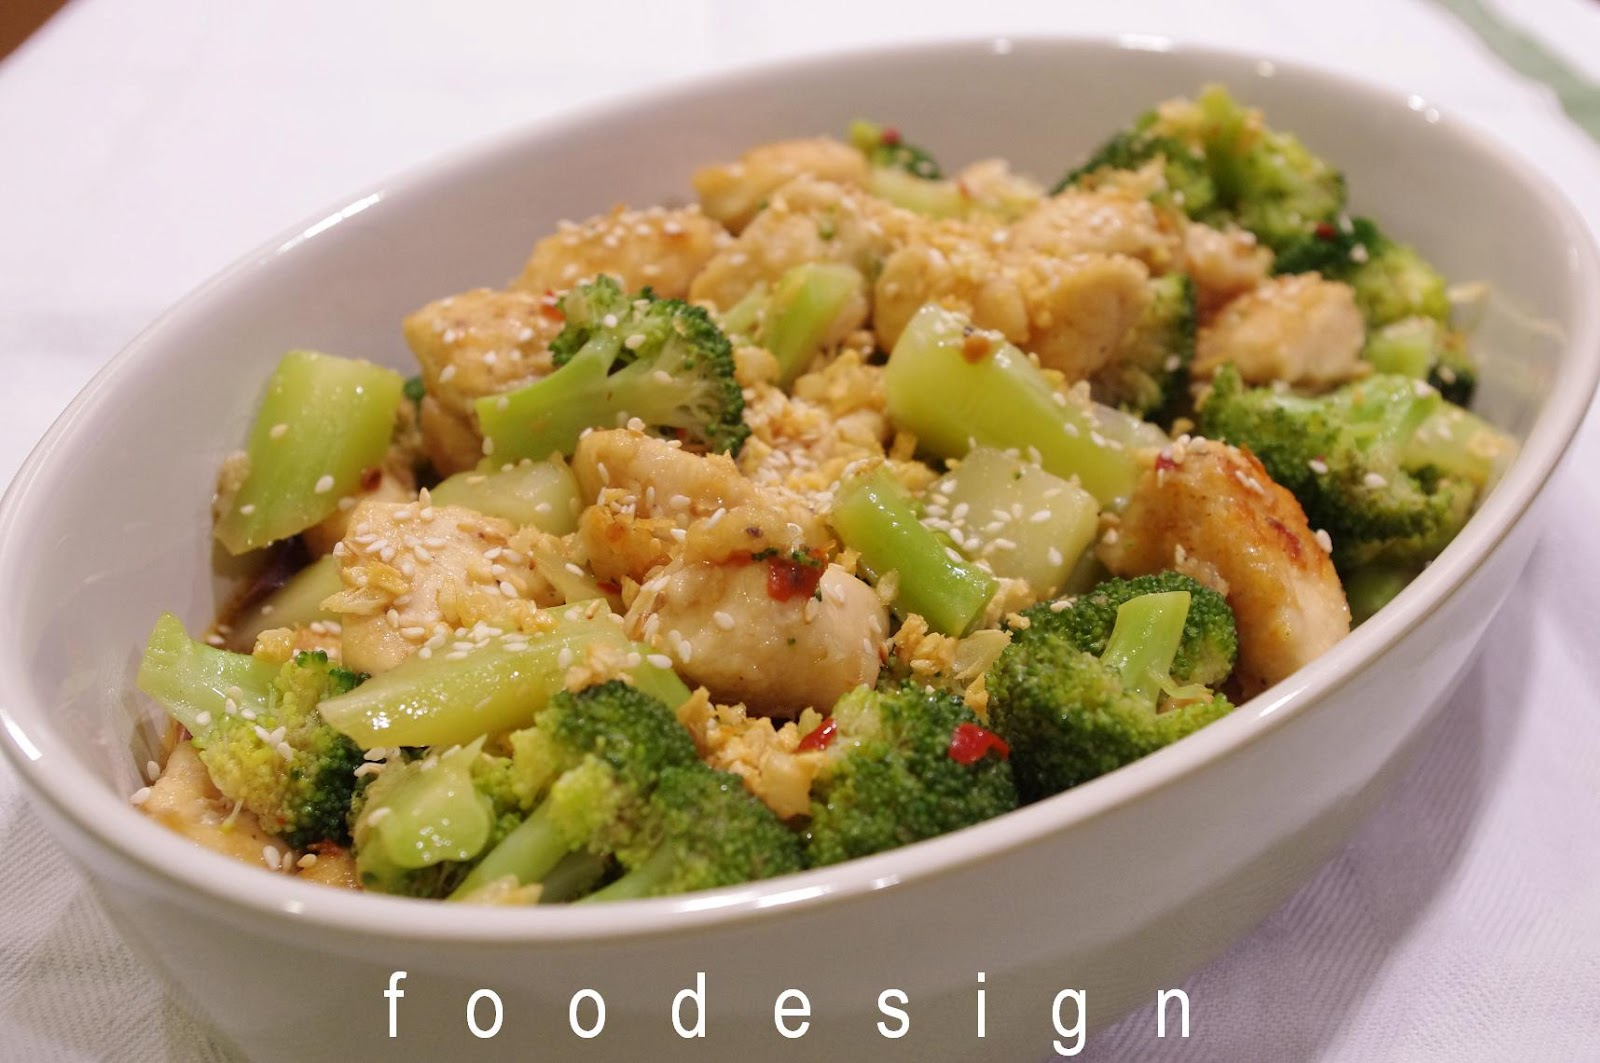 foodesign: a lighter sesame chicken